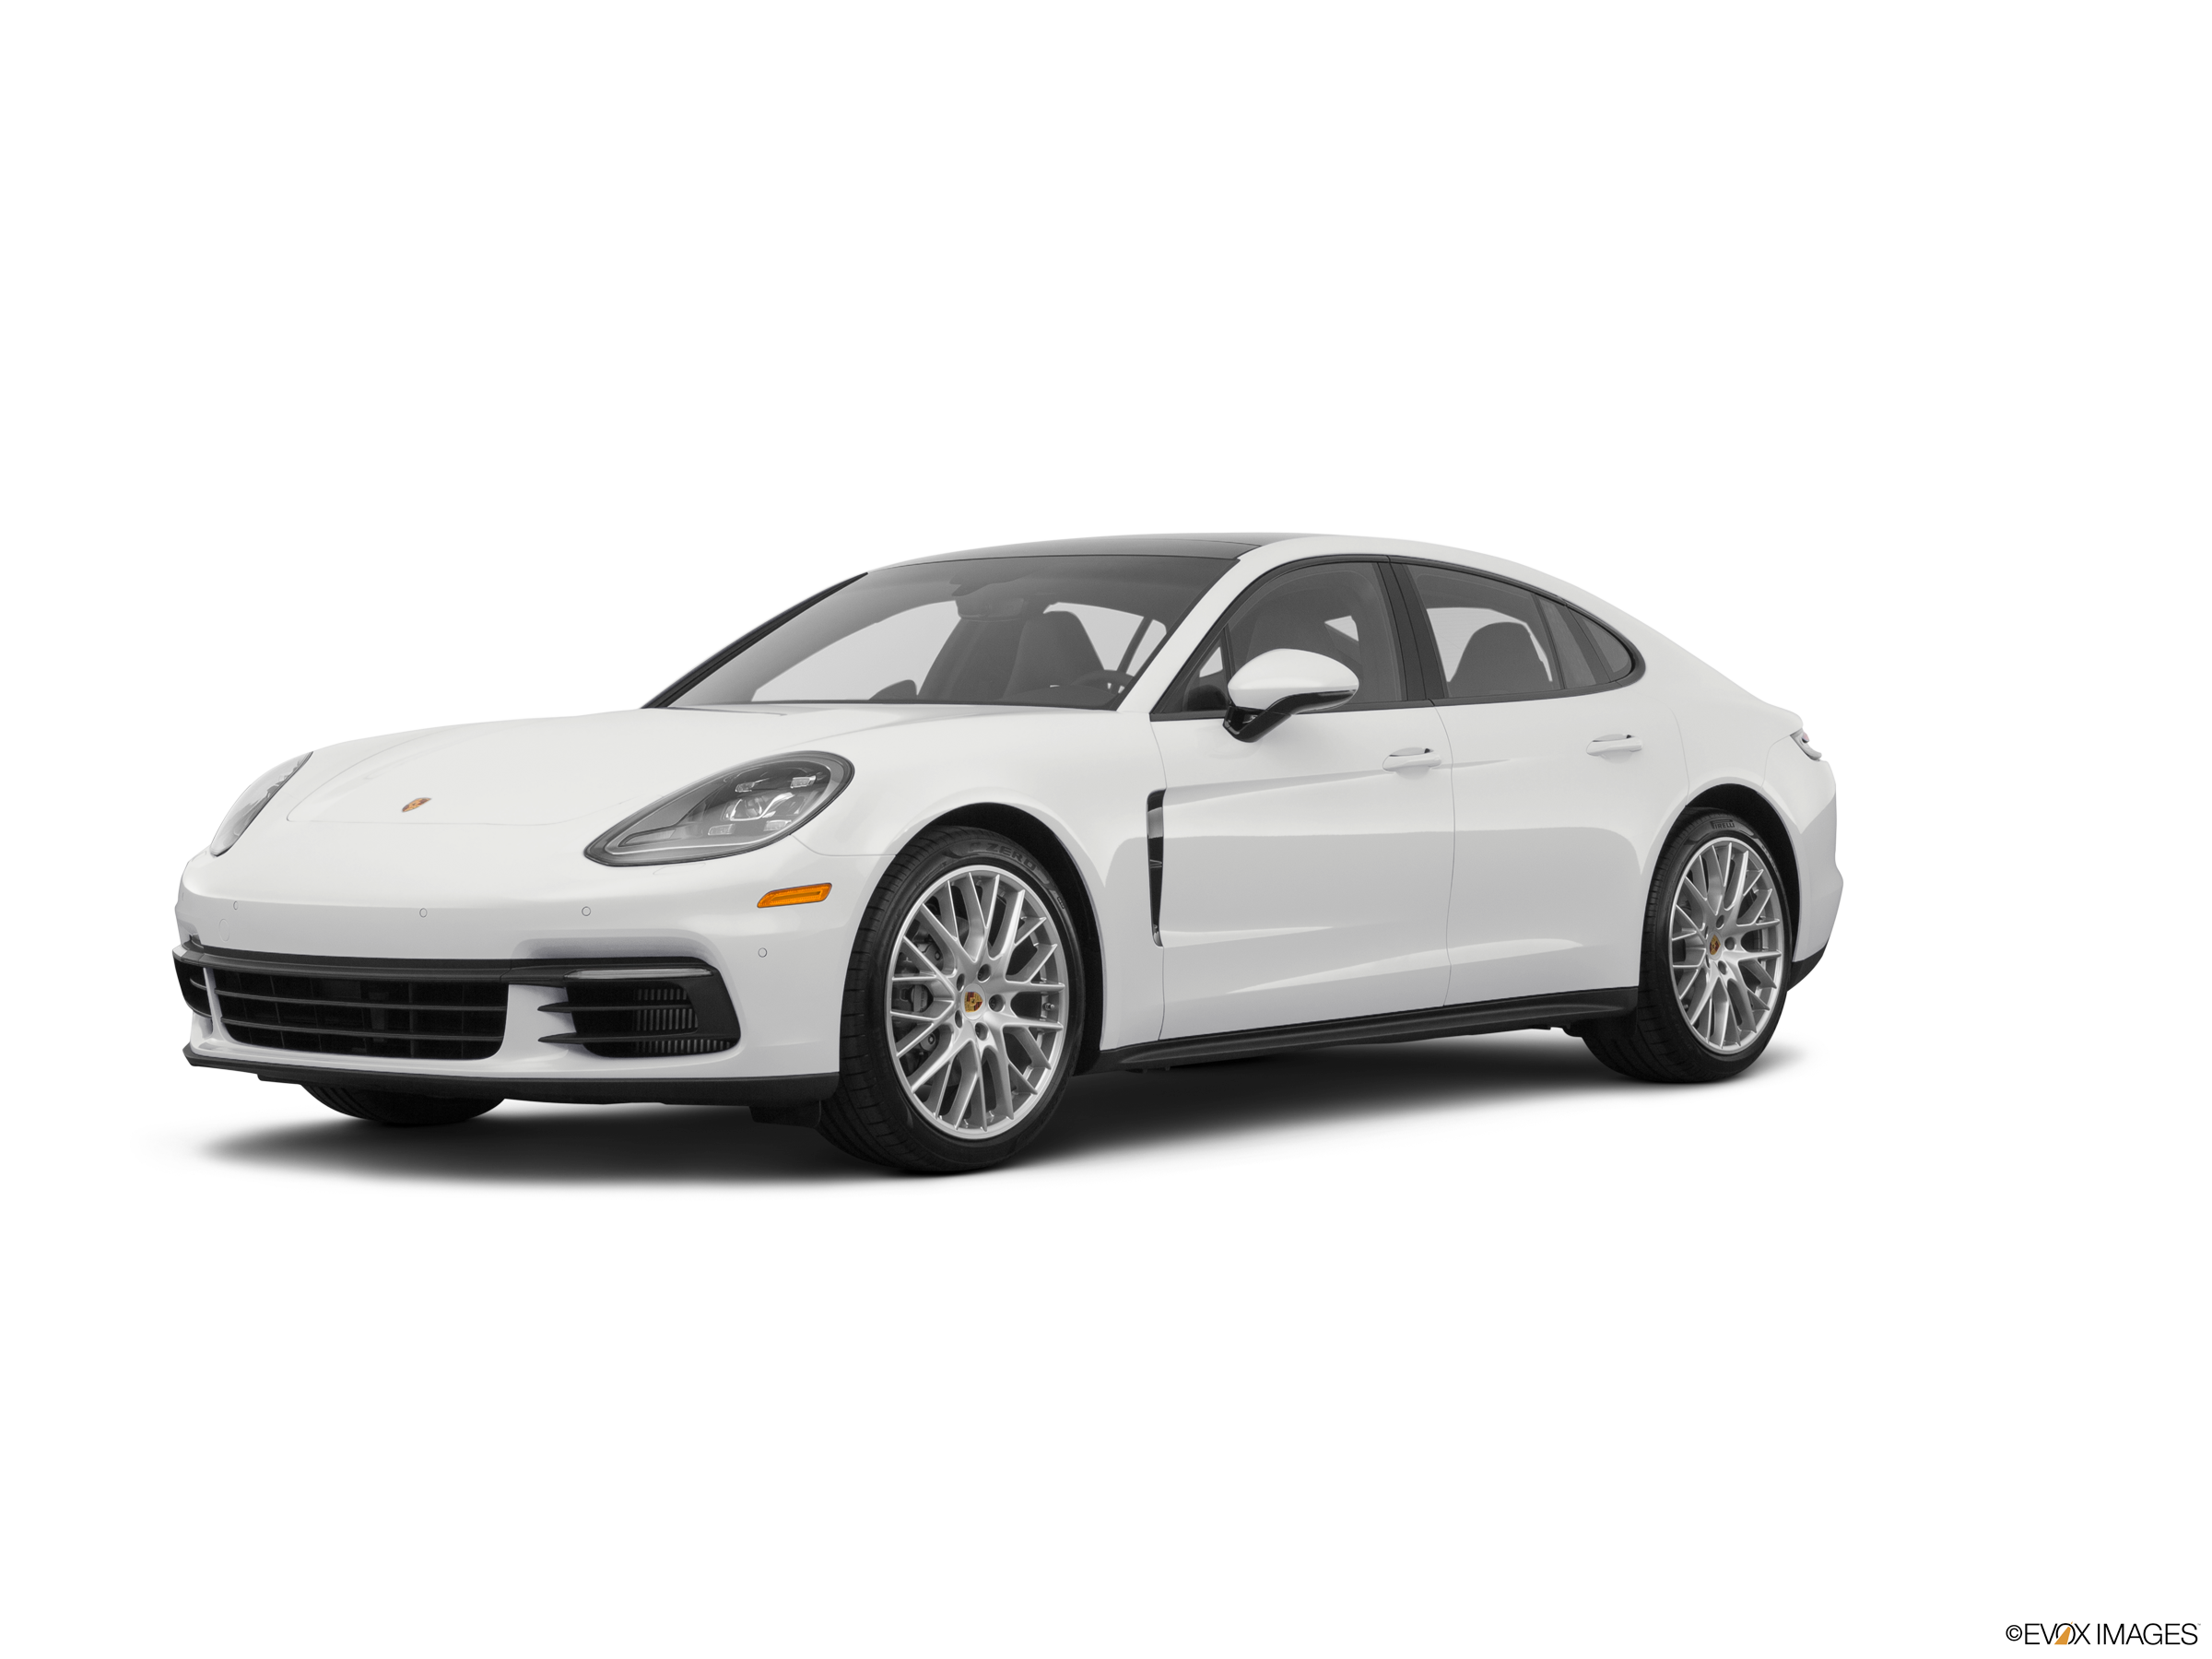 Highest Horsepower Electric Cars of 2017 - 2017 Porsche Panamera